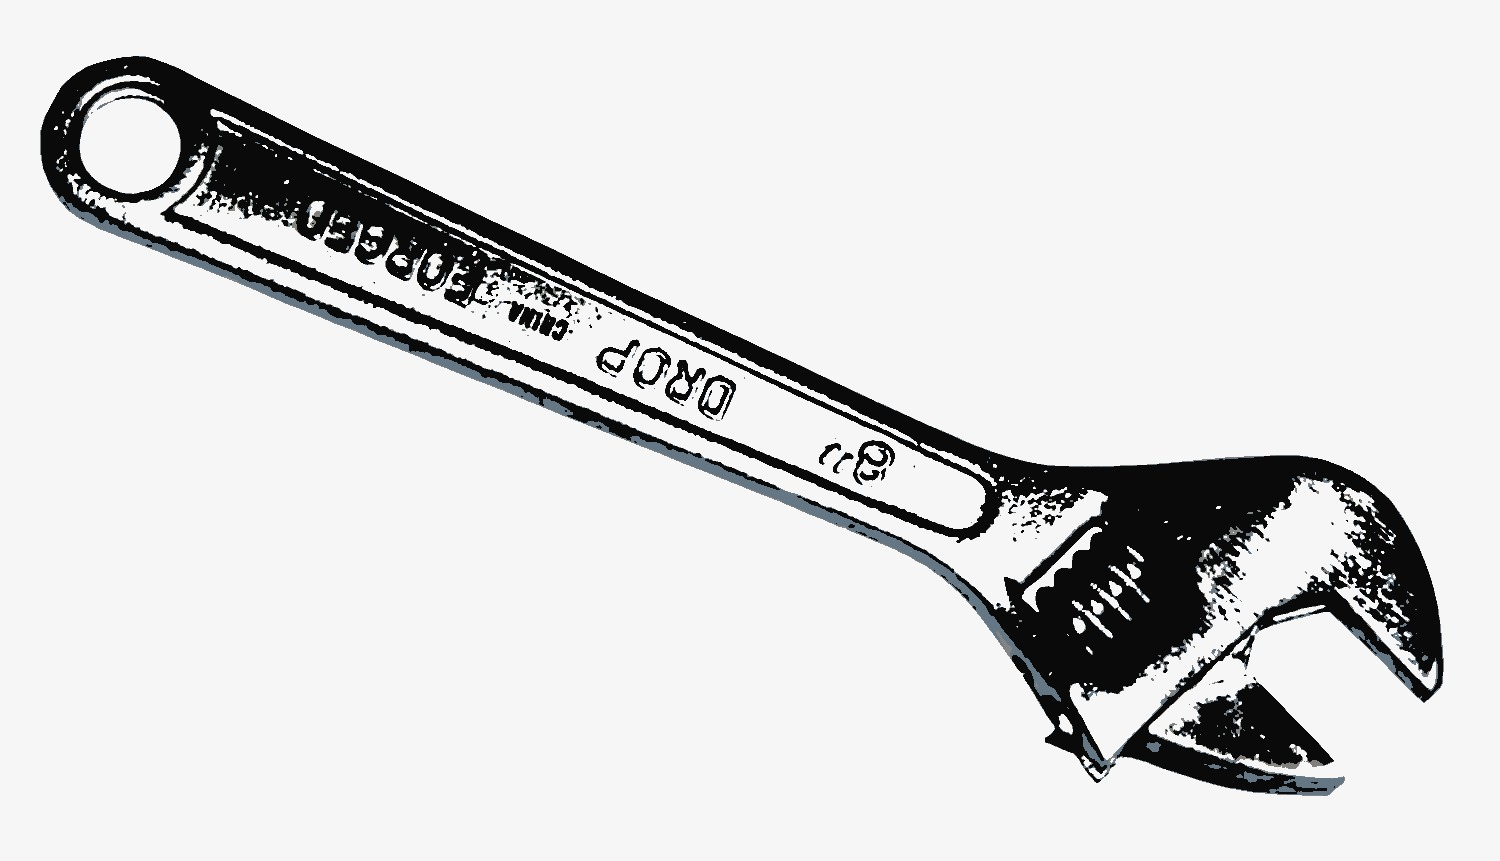 Adjustable Wrench Free Images At Clker